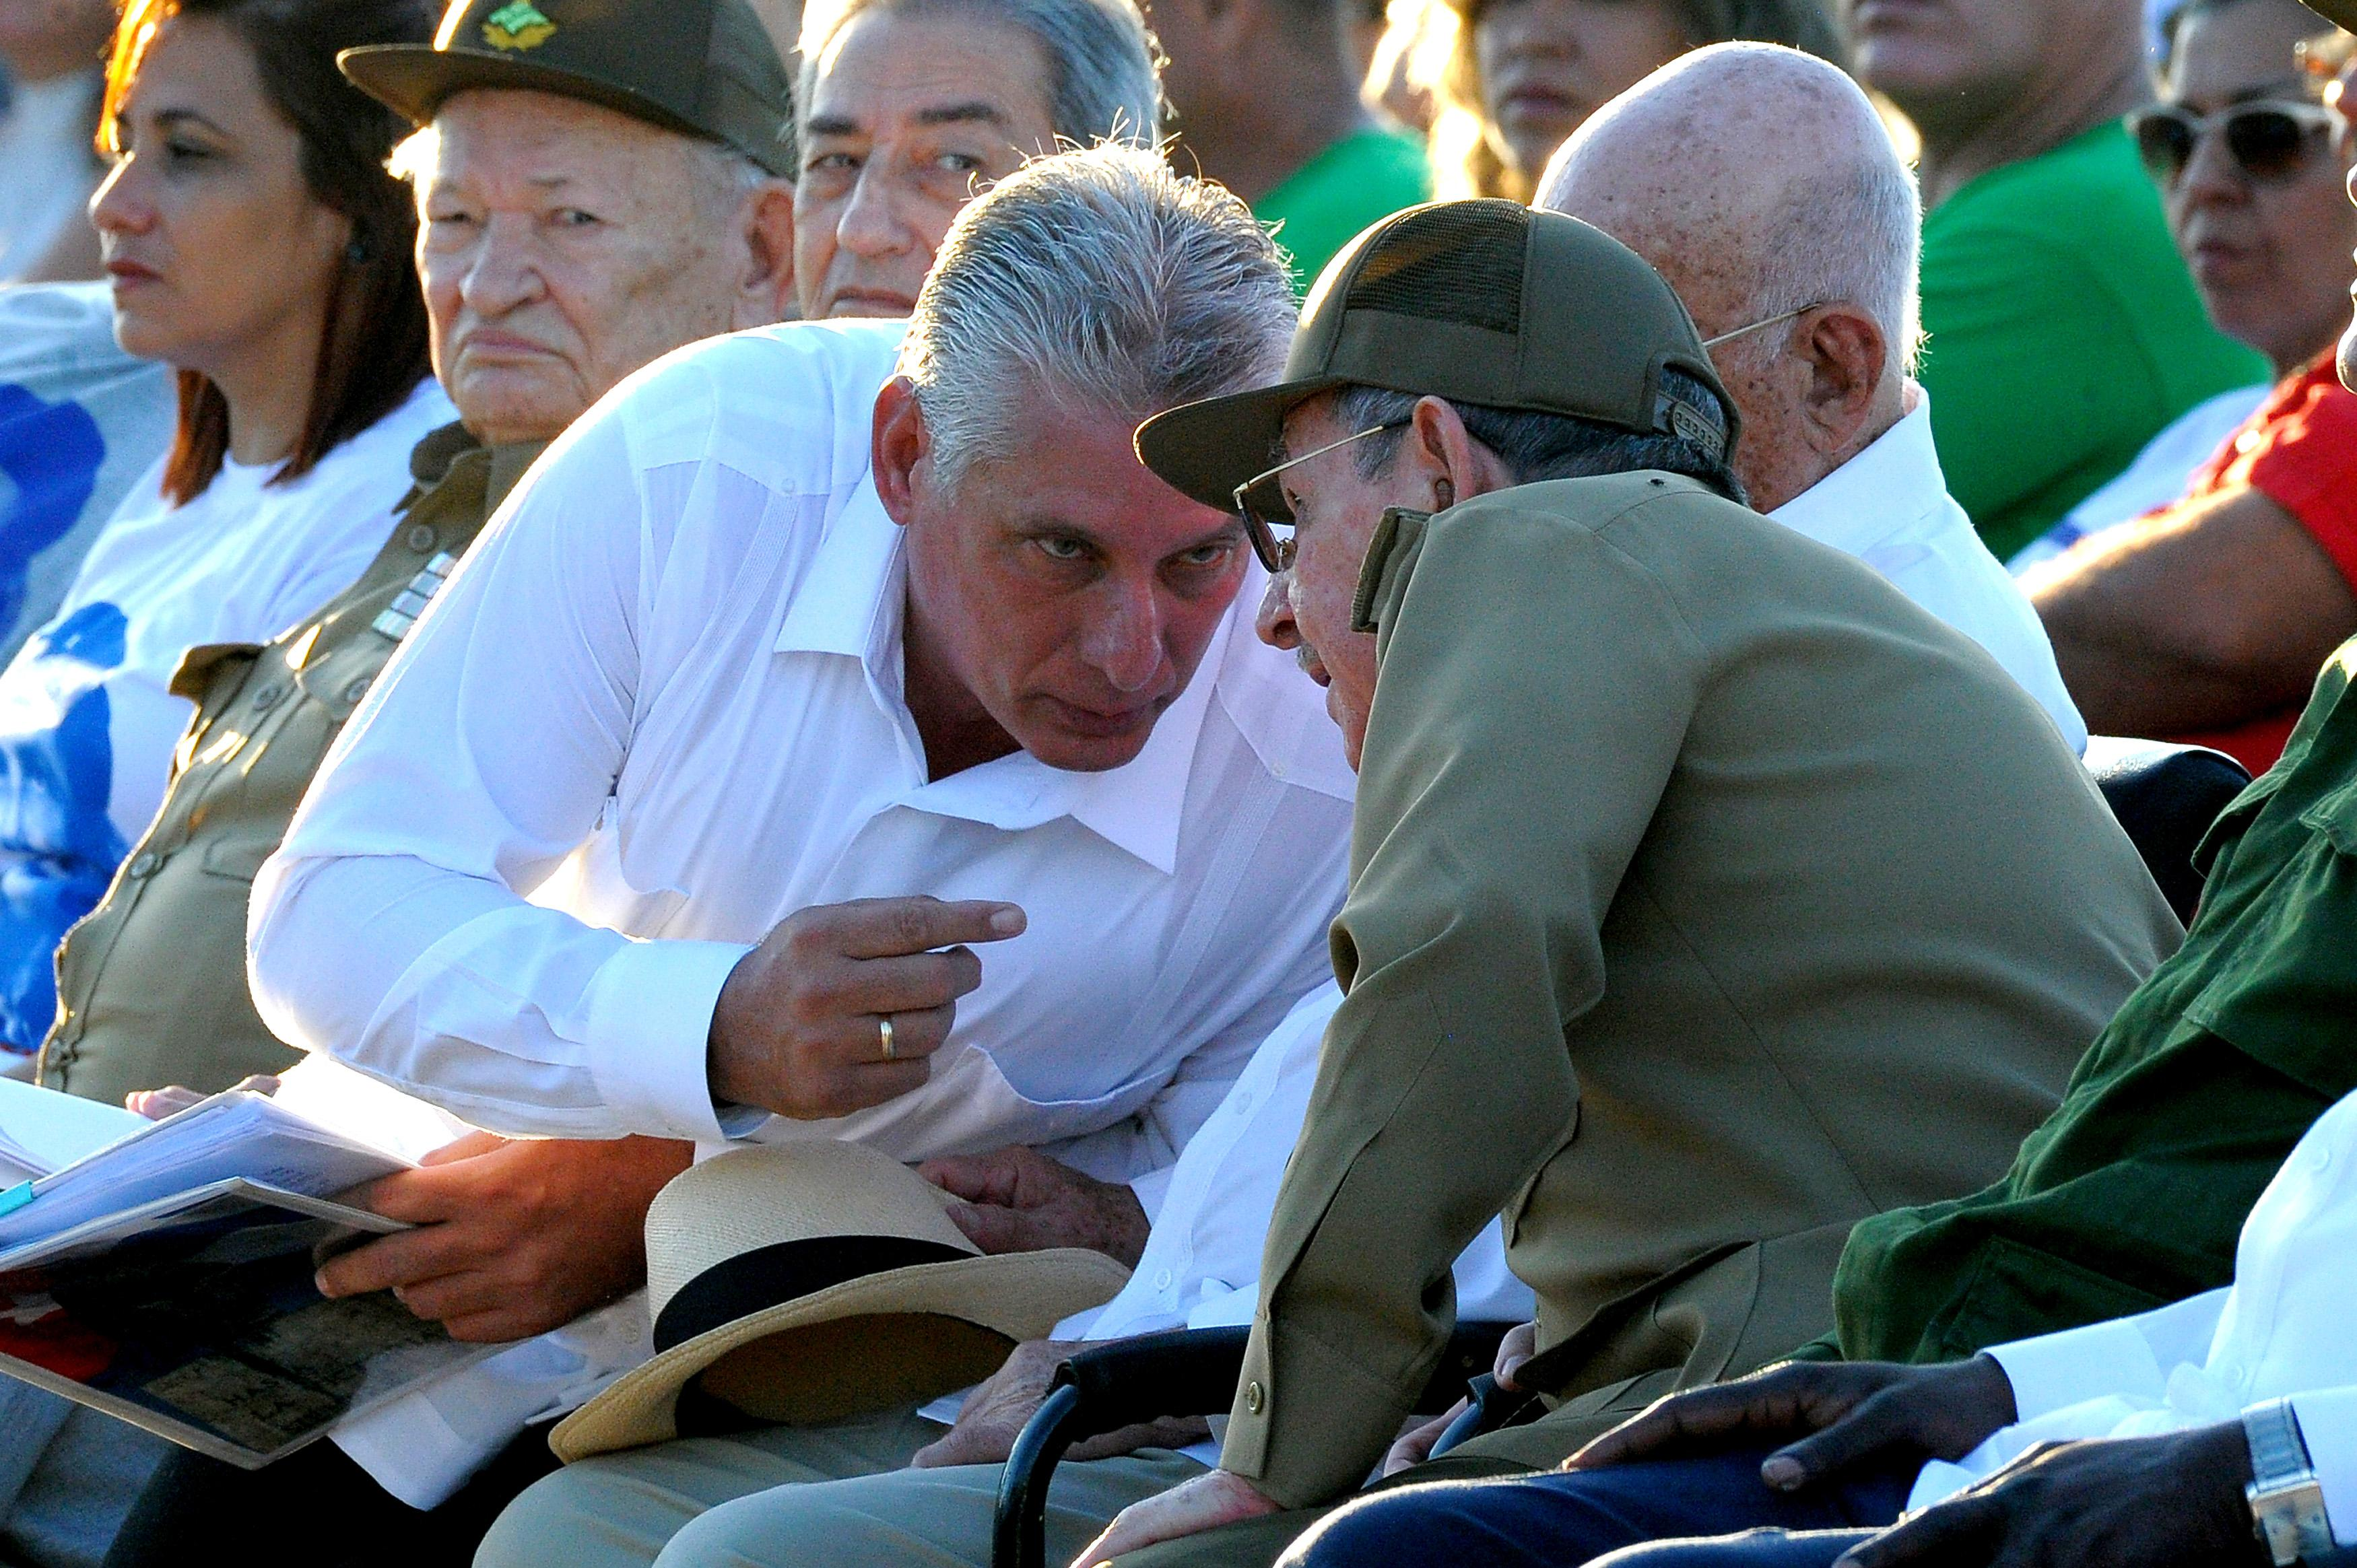 (FILE) Picture taken on on October 8, 2017 showing Cuban President Raul Castro (R) talking to First Vice President Miguel Diaz Canel (L), during the homage for the 50th anniversary of Ernesto 'Che' Guevara's death, in Santa Clara, Cuba.          Cuba is preparing for the end of an era next week when Raul Castro steps down as president, ending his family's six-decade grip on power, and paving the way for a younger leader. But analysts say his replacement, expected to be 57-year-old Miguel Diaz-Canel -- currently Cuba's first vice president -- won't quite be alone at the helm of the communist island. / AFP PHOTO / YAMIL LAGE / TO GO WITH AFP STORY by Alexandre GROSBOIS        (Photo credit should read YAMIL LAGE/AFP/Getty Images)